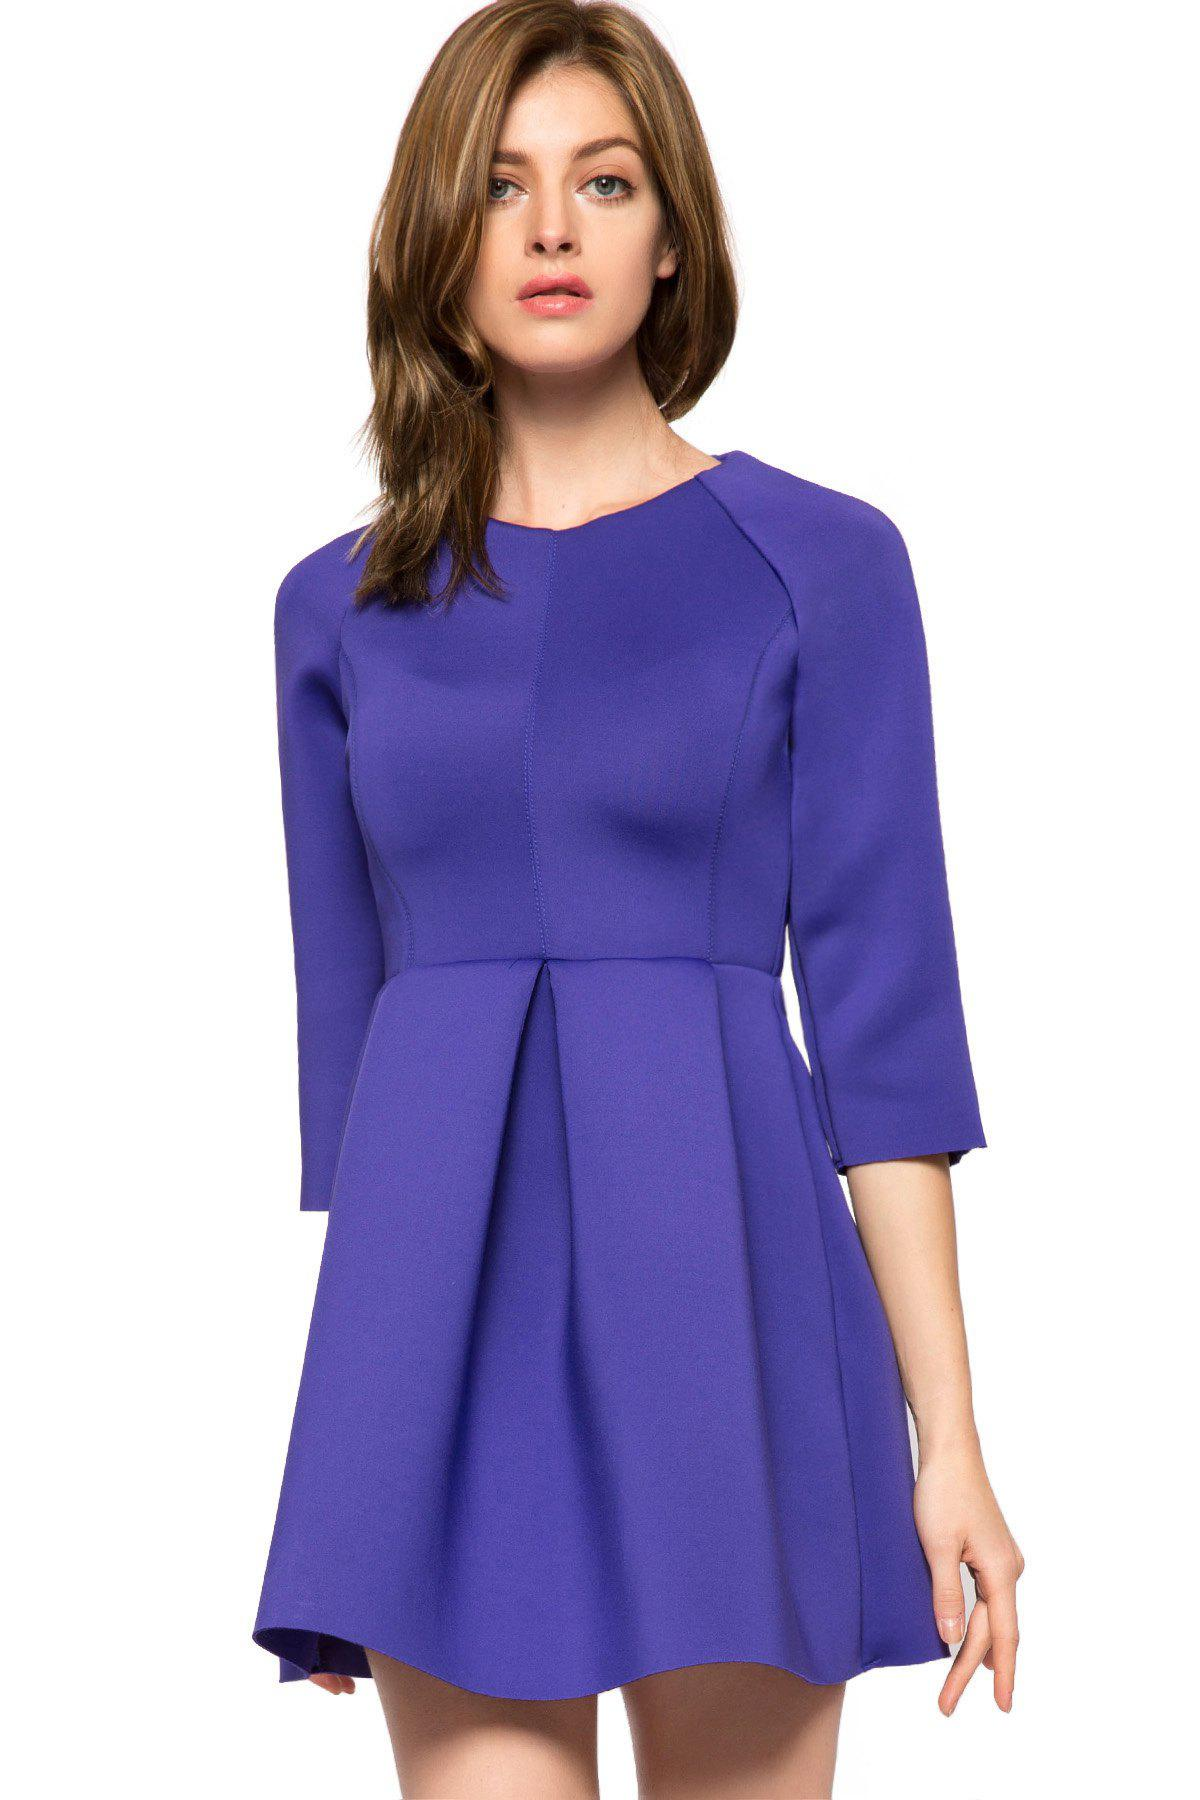 Sale Trendy Style Round Collar 3/4 Sleeve Solid Color Pleated A-Line Women's Dress